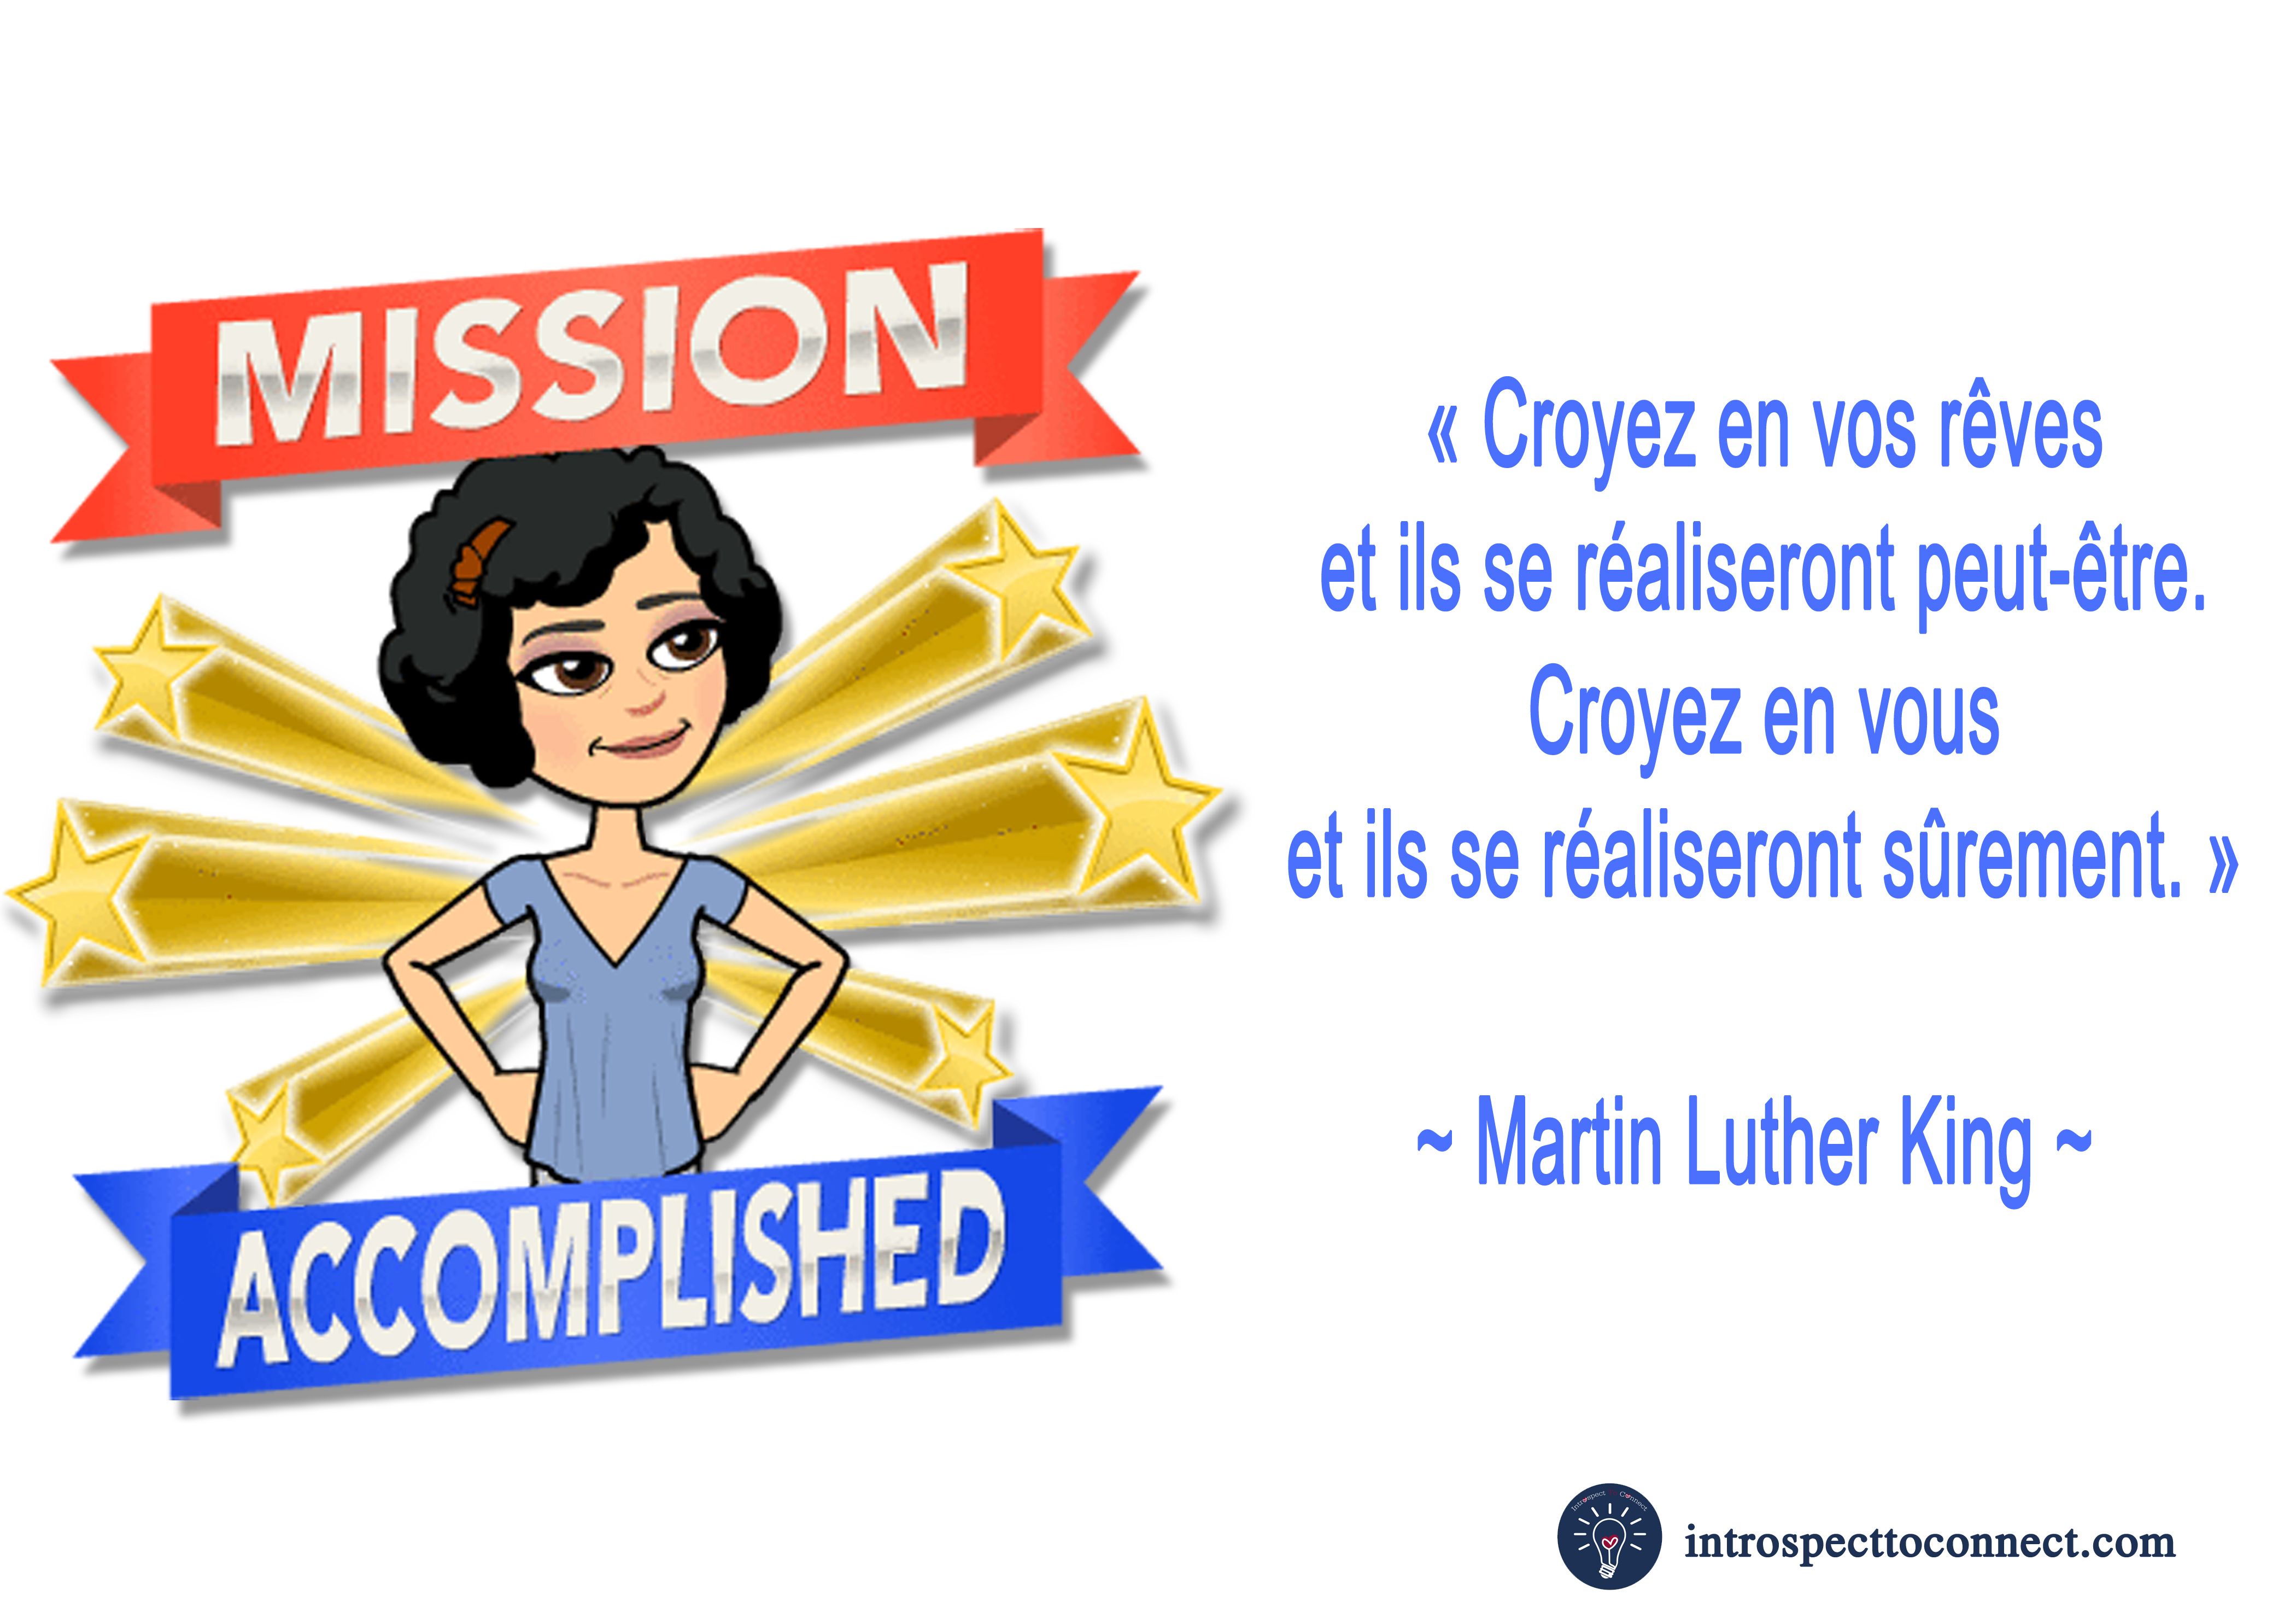 Martin luther king citation copie.jpg